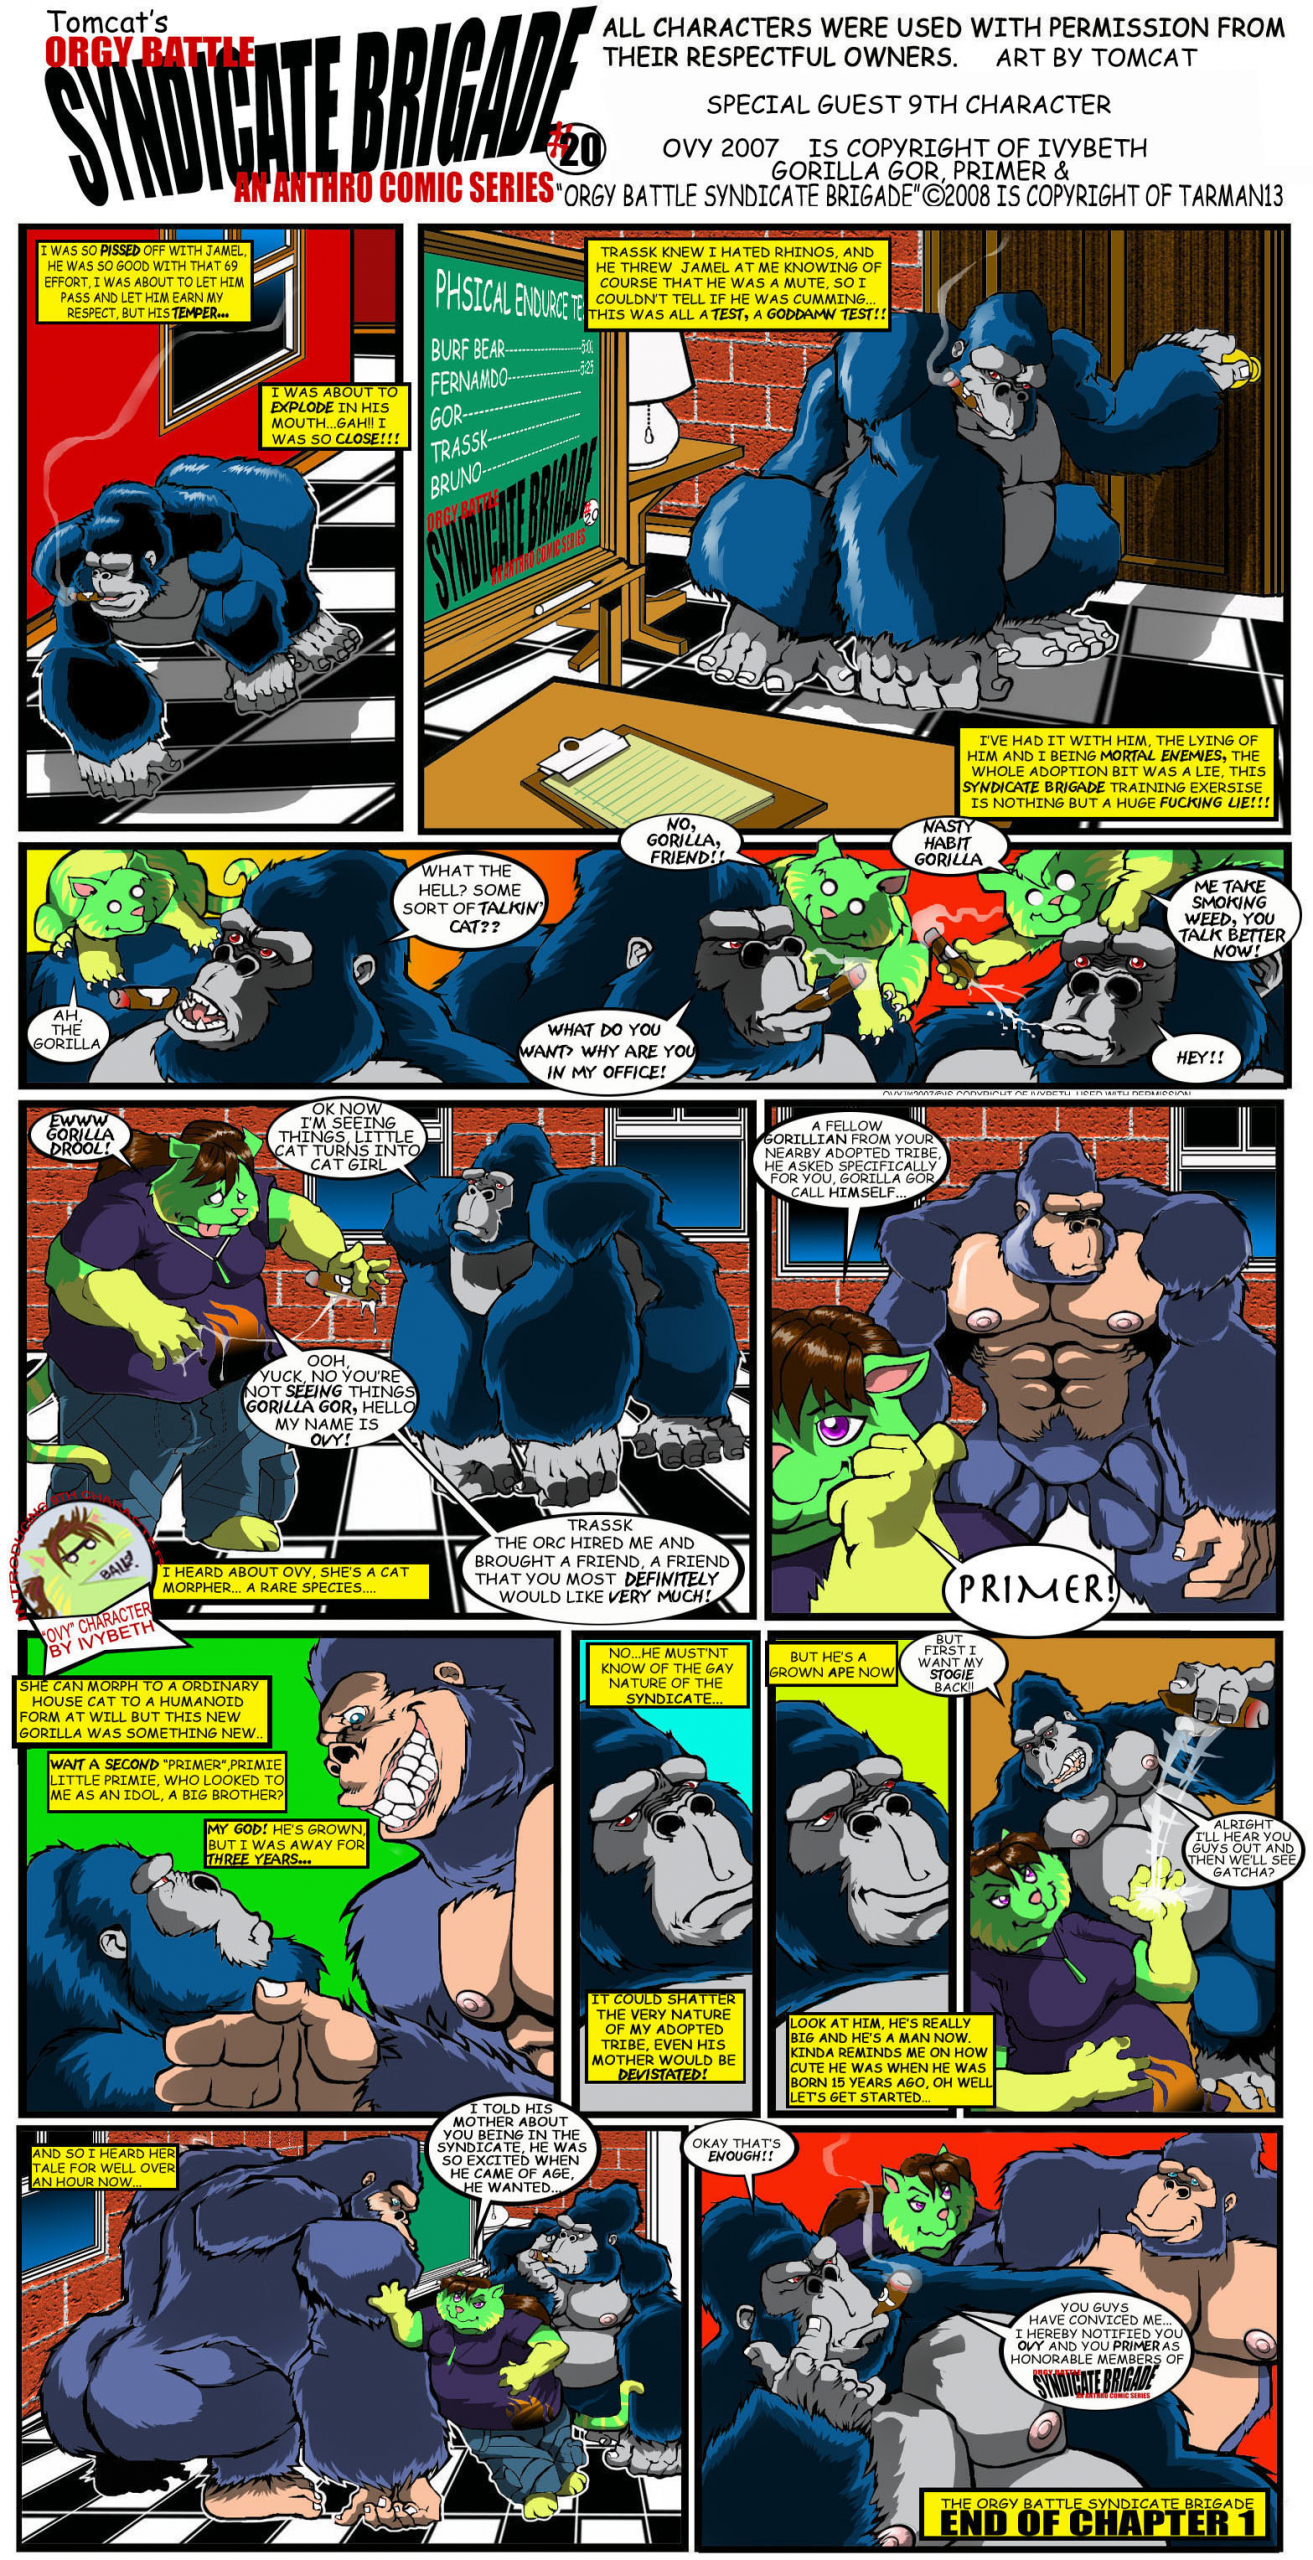 168214_Tomcat_syndicate_comic_page_20